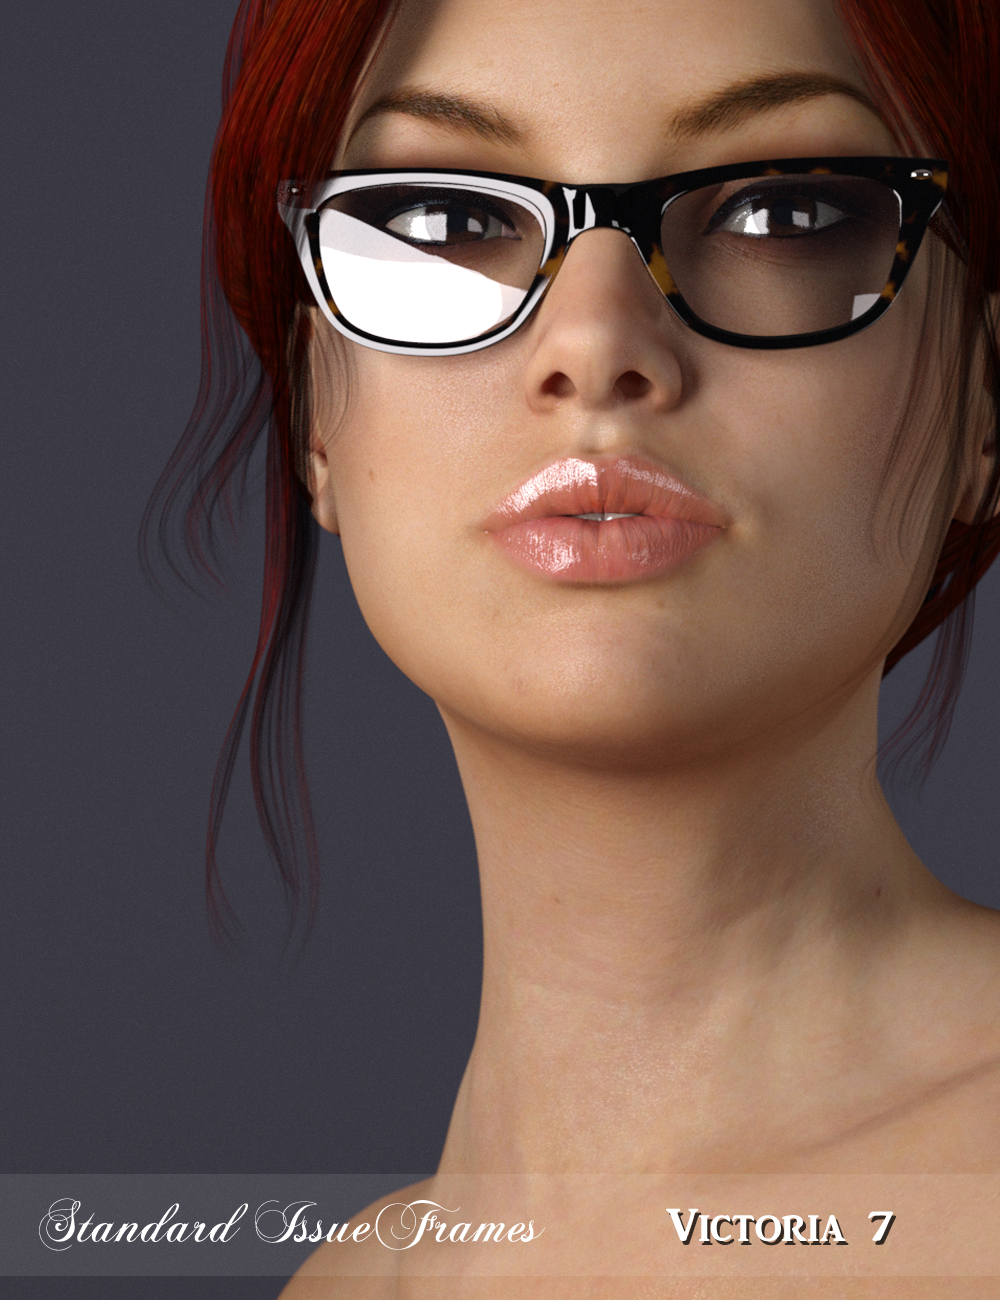 Specs Appeal by: Moonscape Graphics, 3D Models by Daz 3D